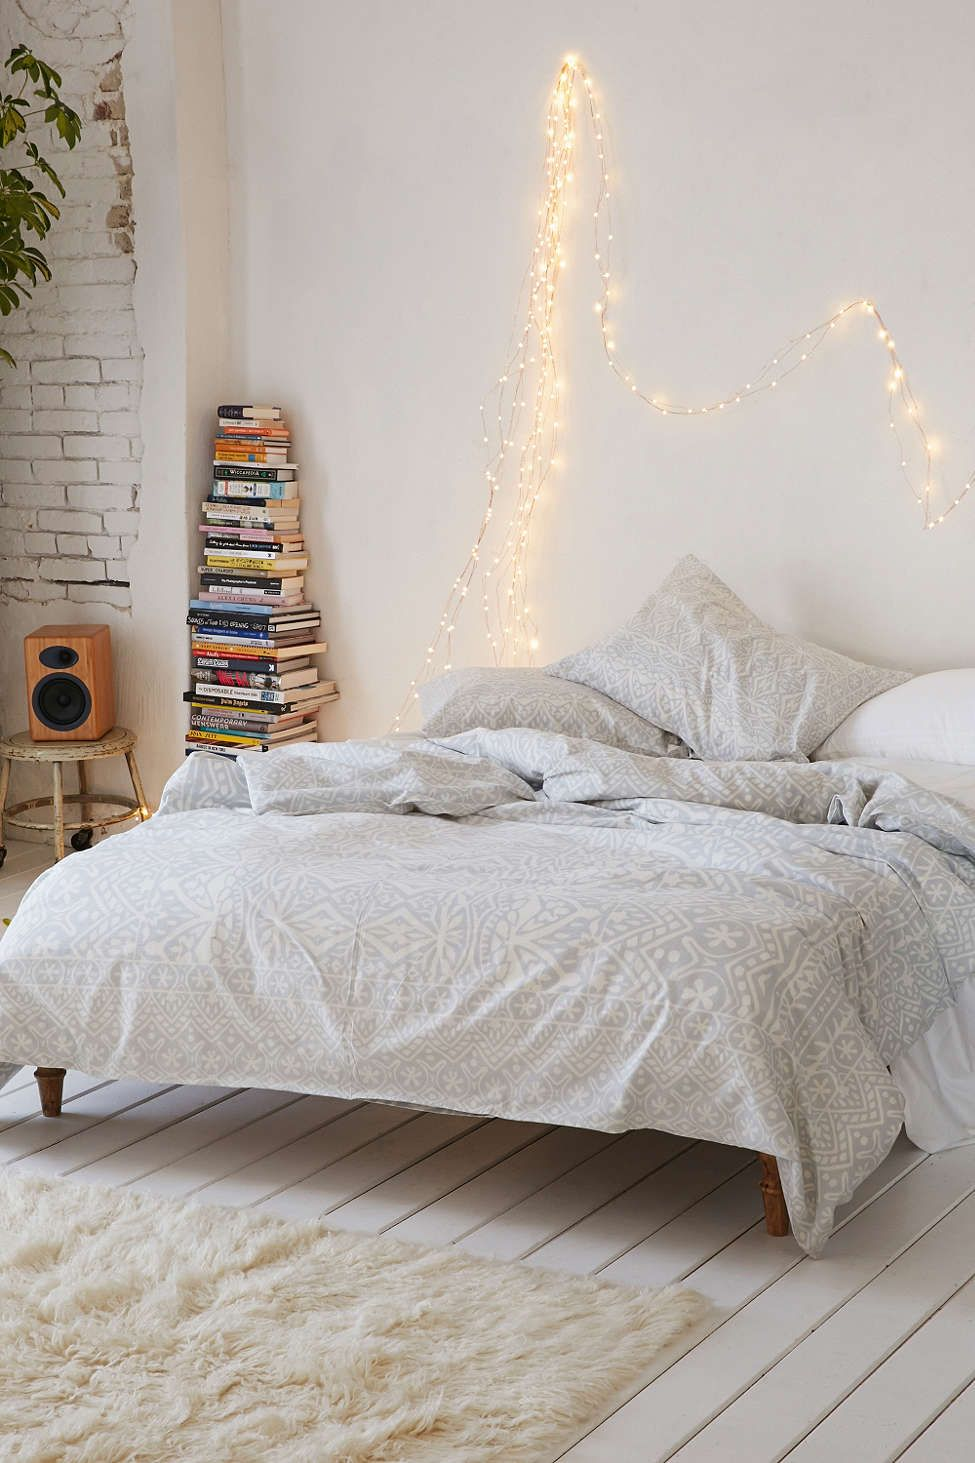 images about bedroom on Pinterest Urban outfitters Laundry